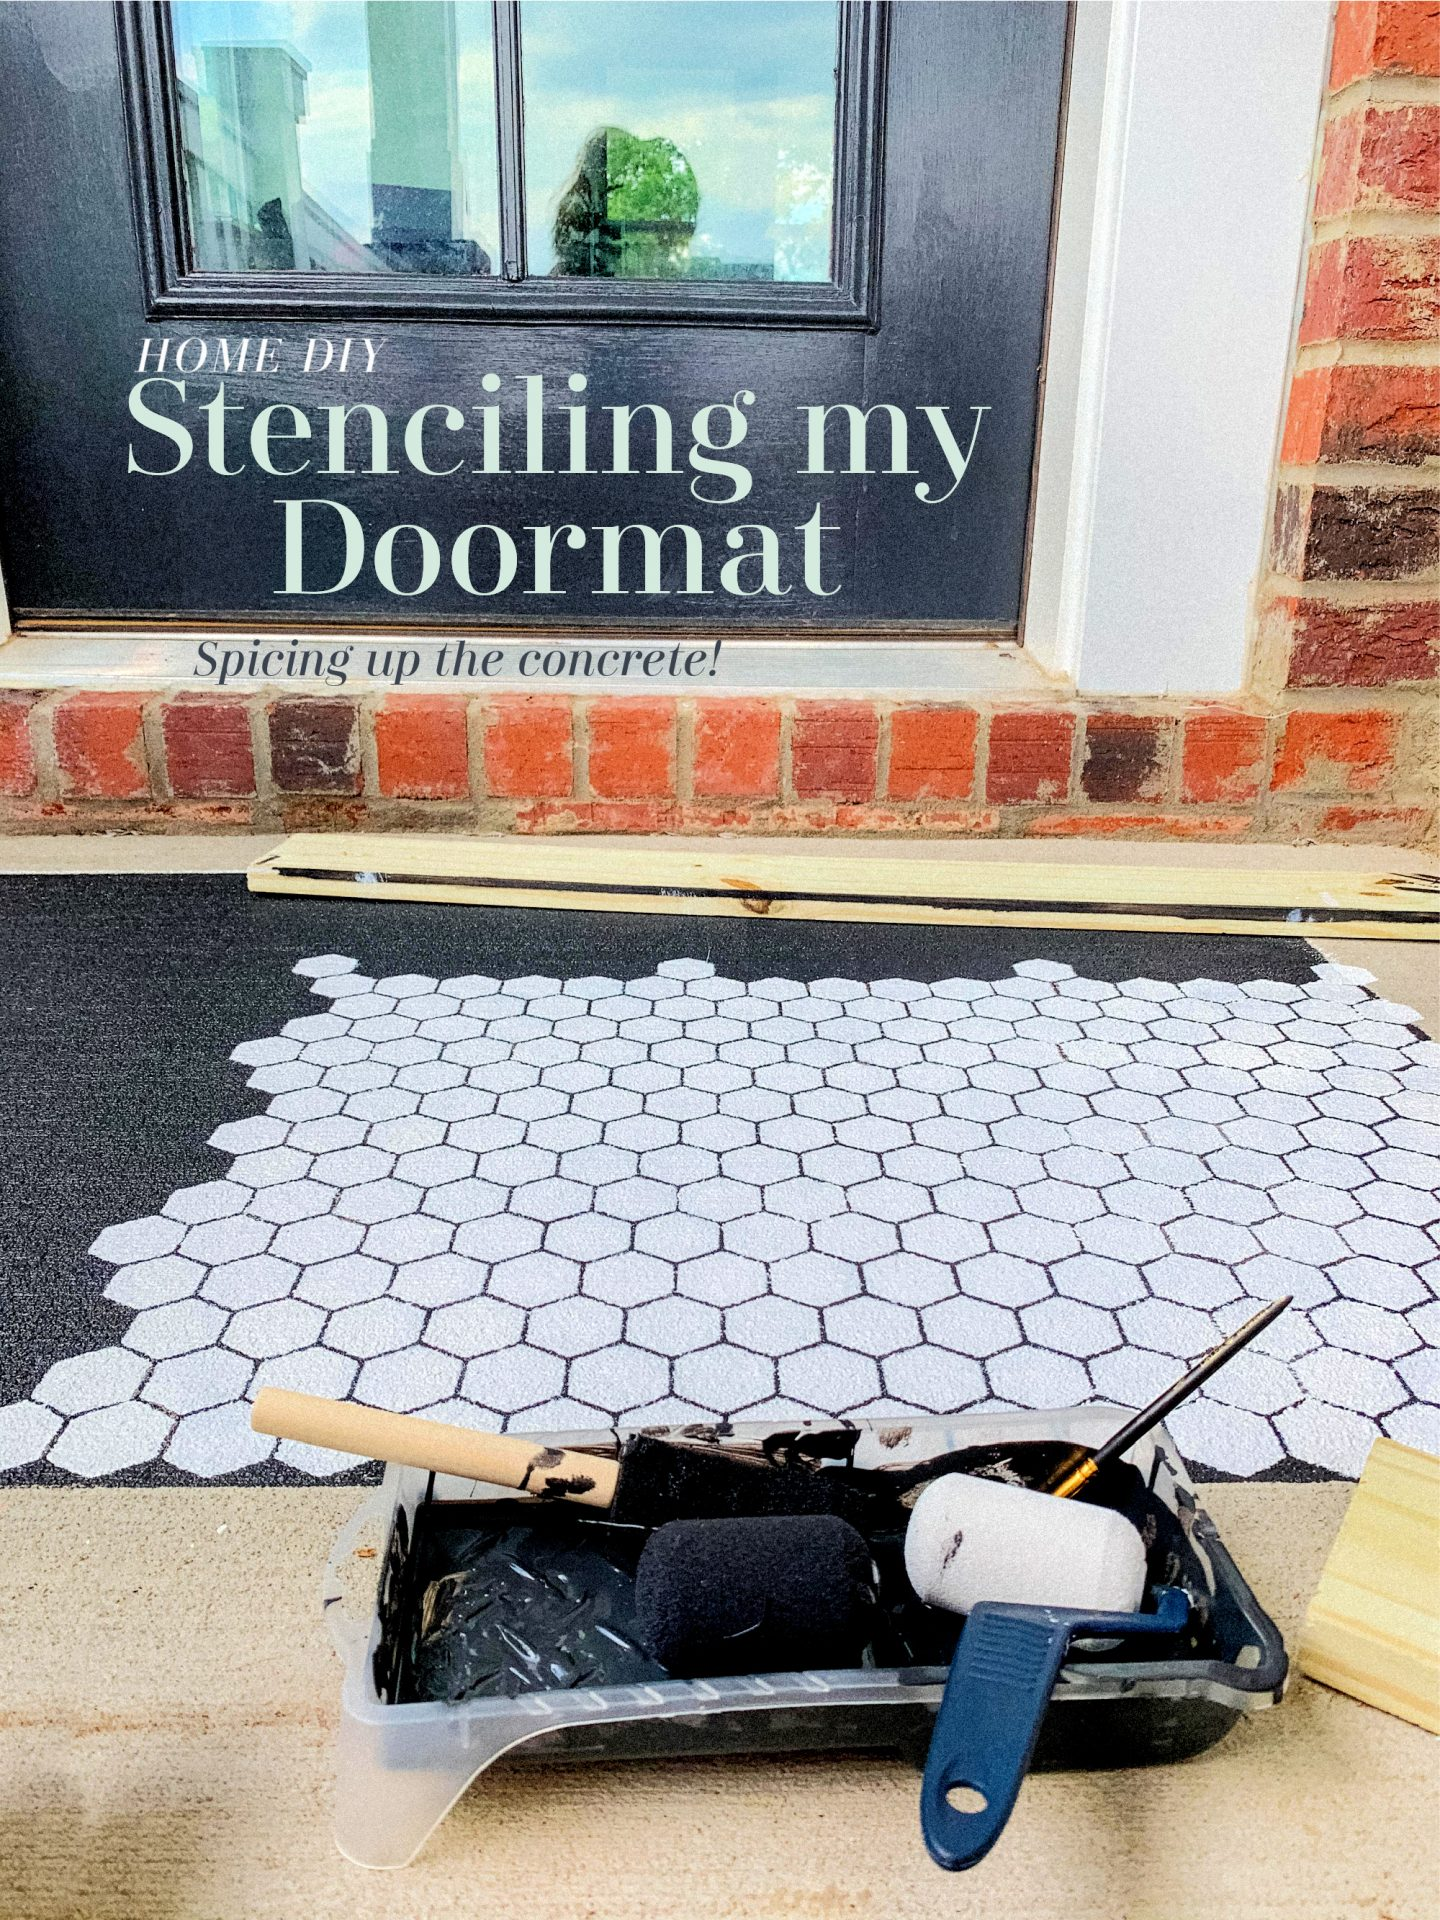 https://simplytaralynn.com/2020/08/04/i-stenciled-my-doormat-on-the-front-porch-painting-concrete/